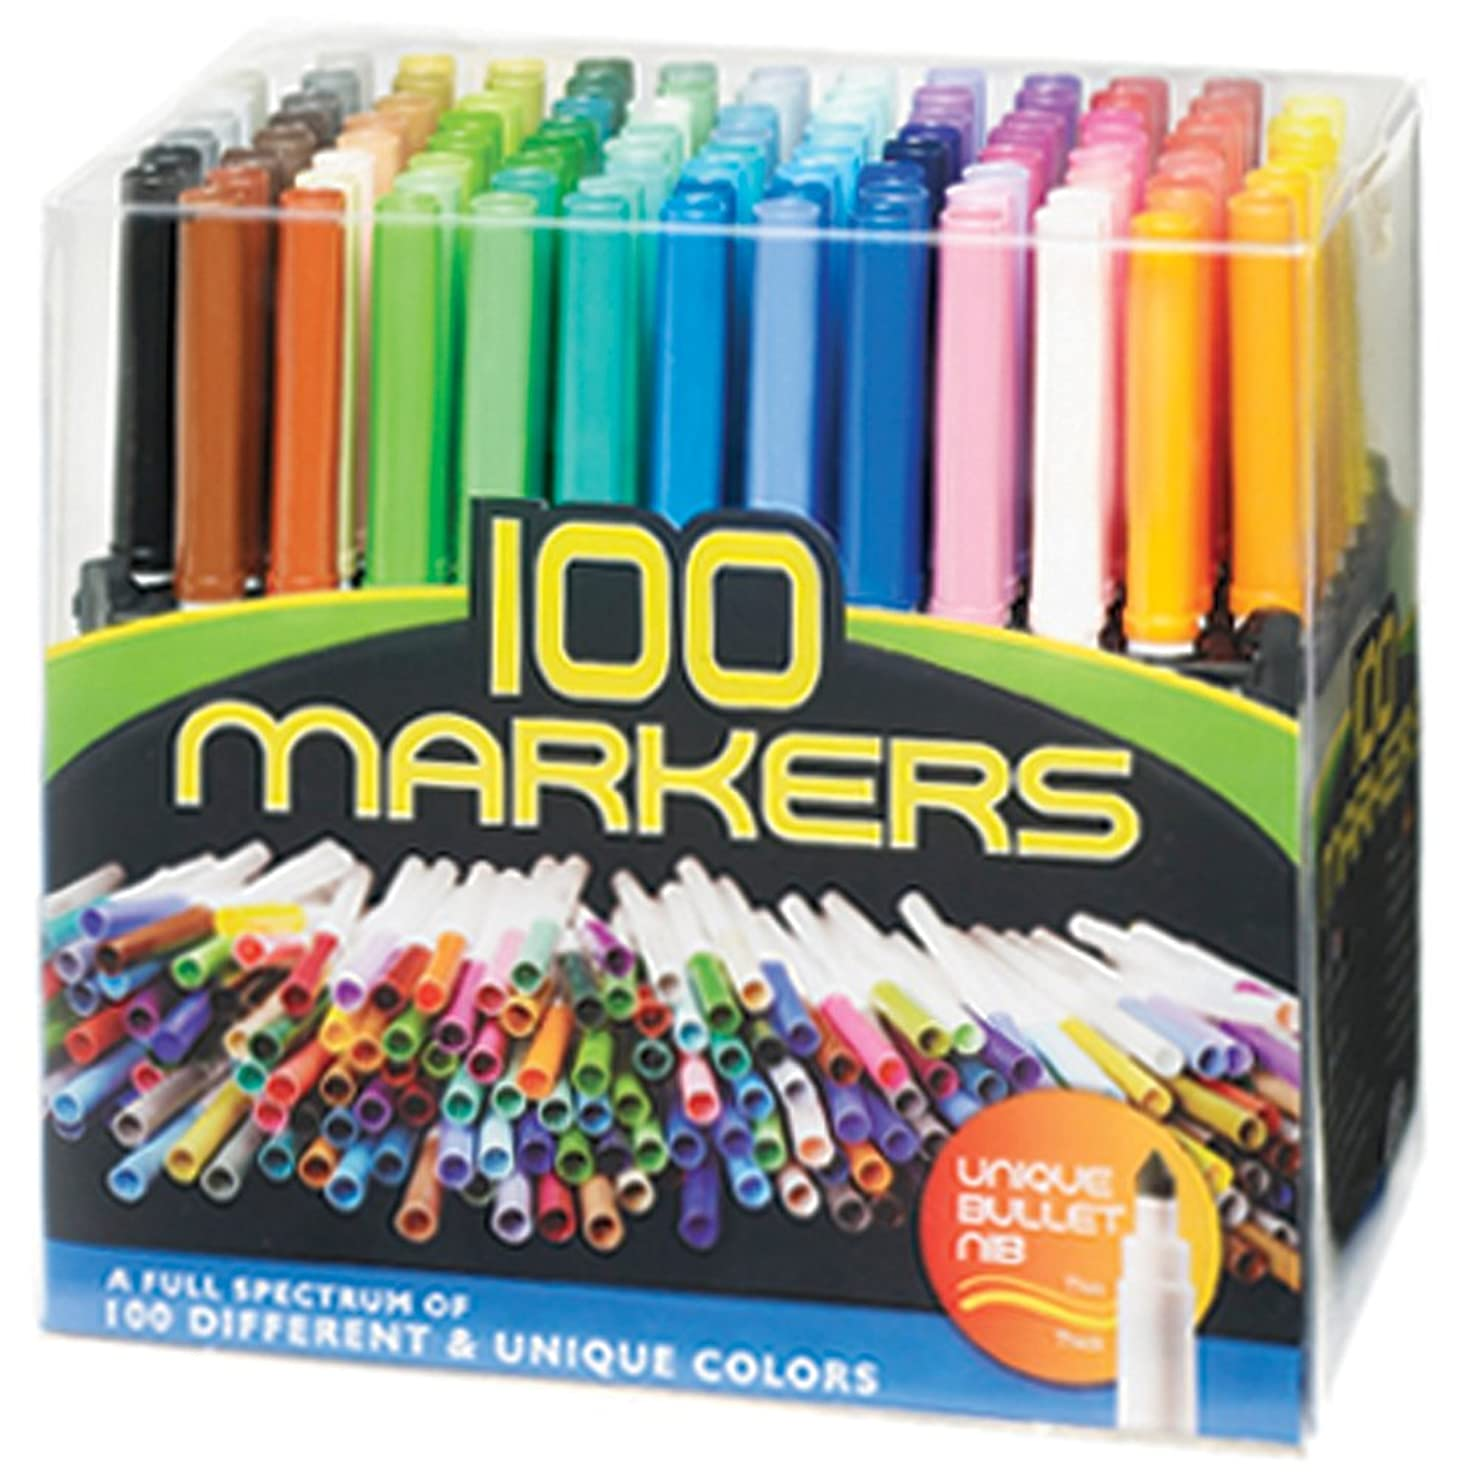 Pro Art PRO-MAR100 Bullet Point Marker Set